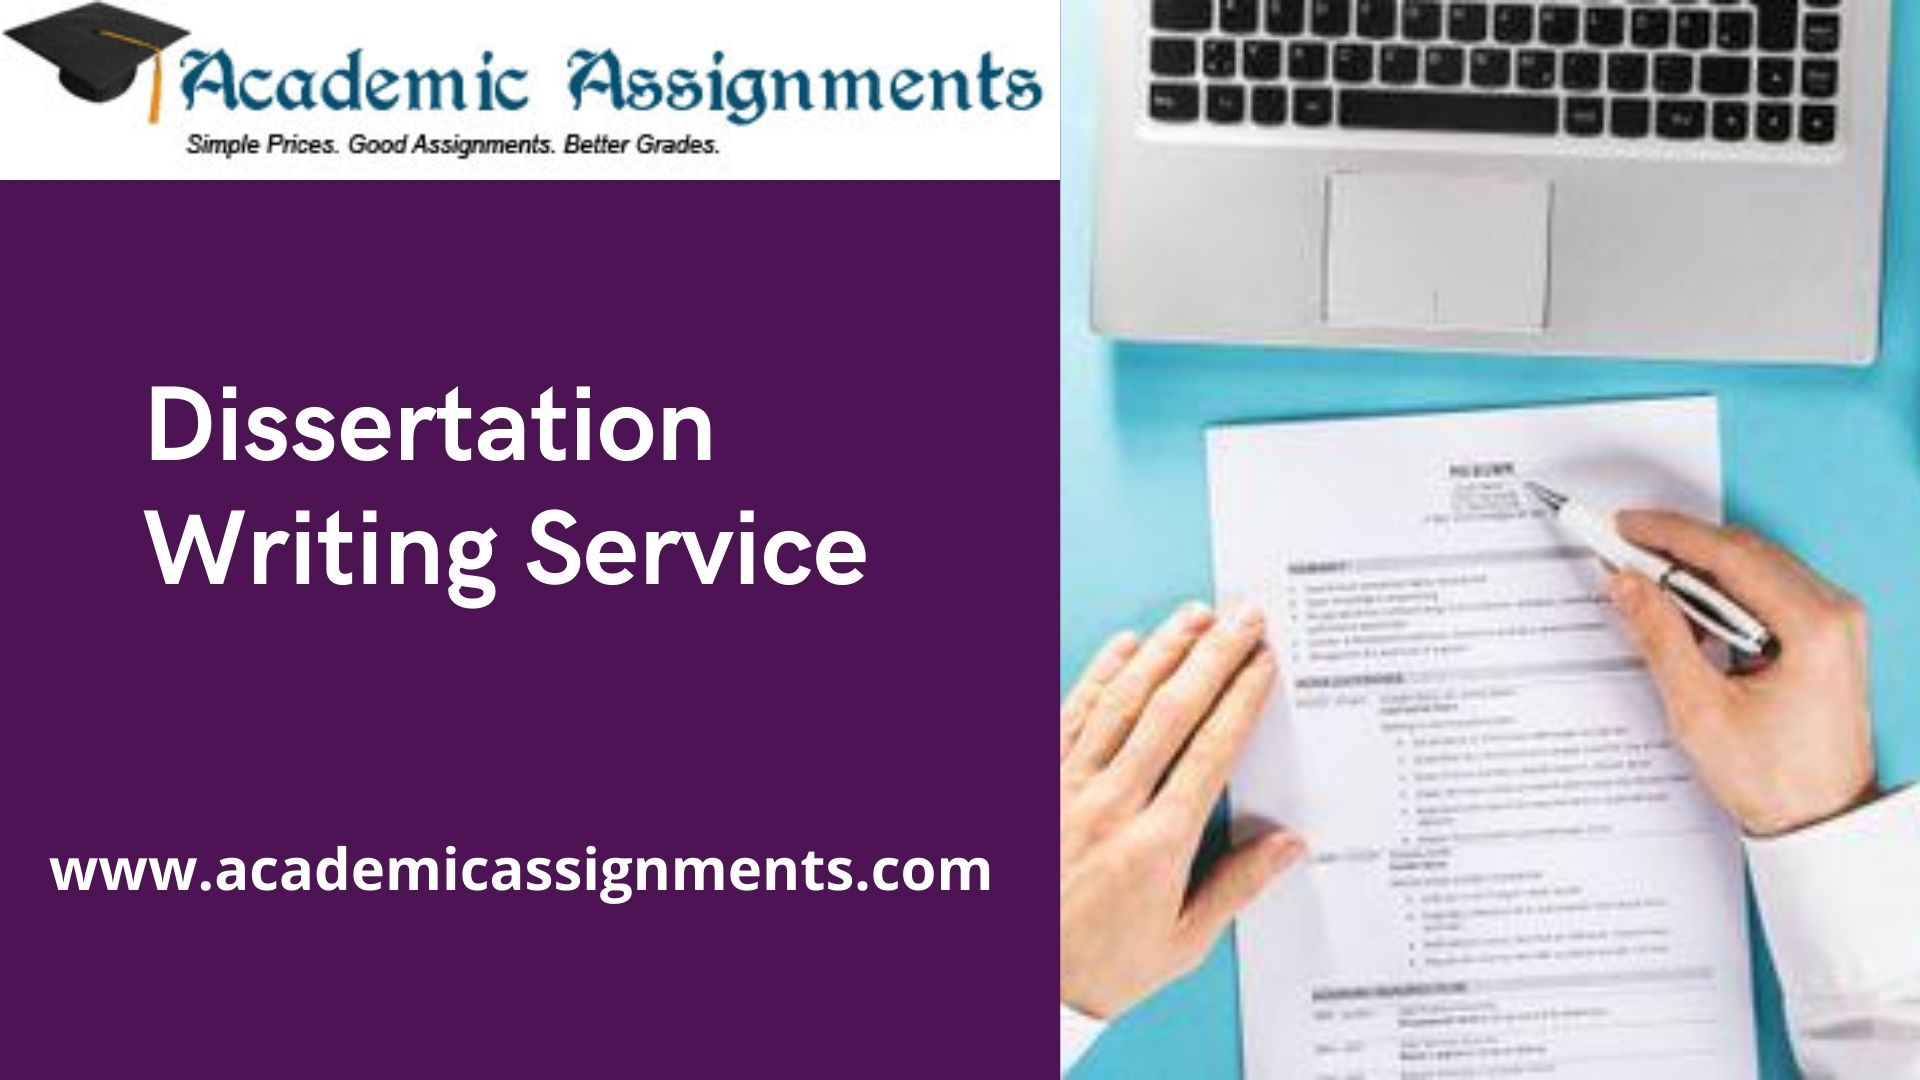 Dissertation Writing Service by Academic Assignments